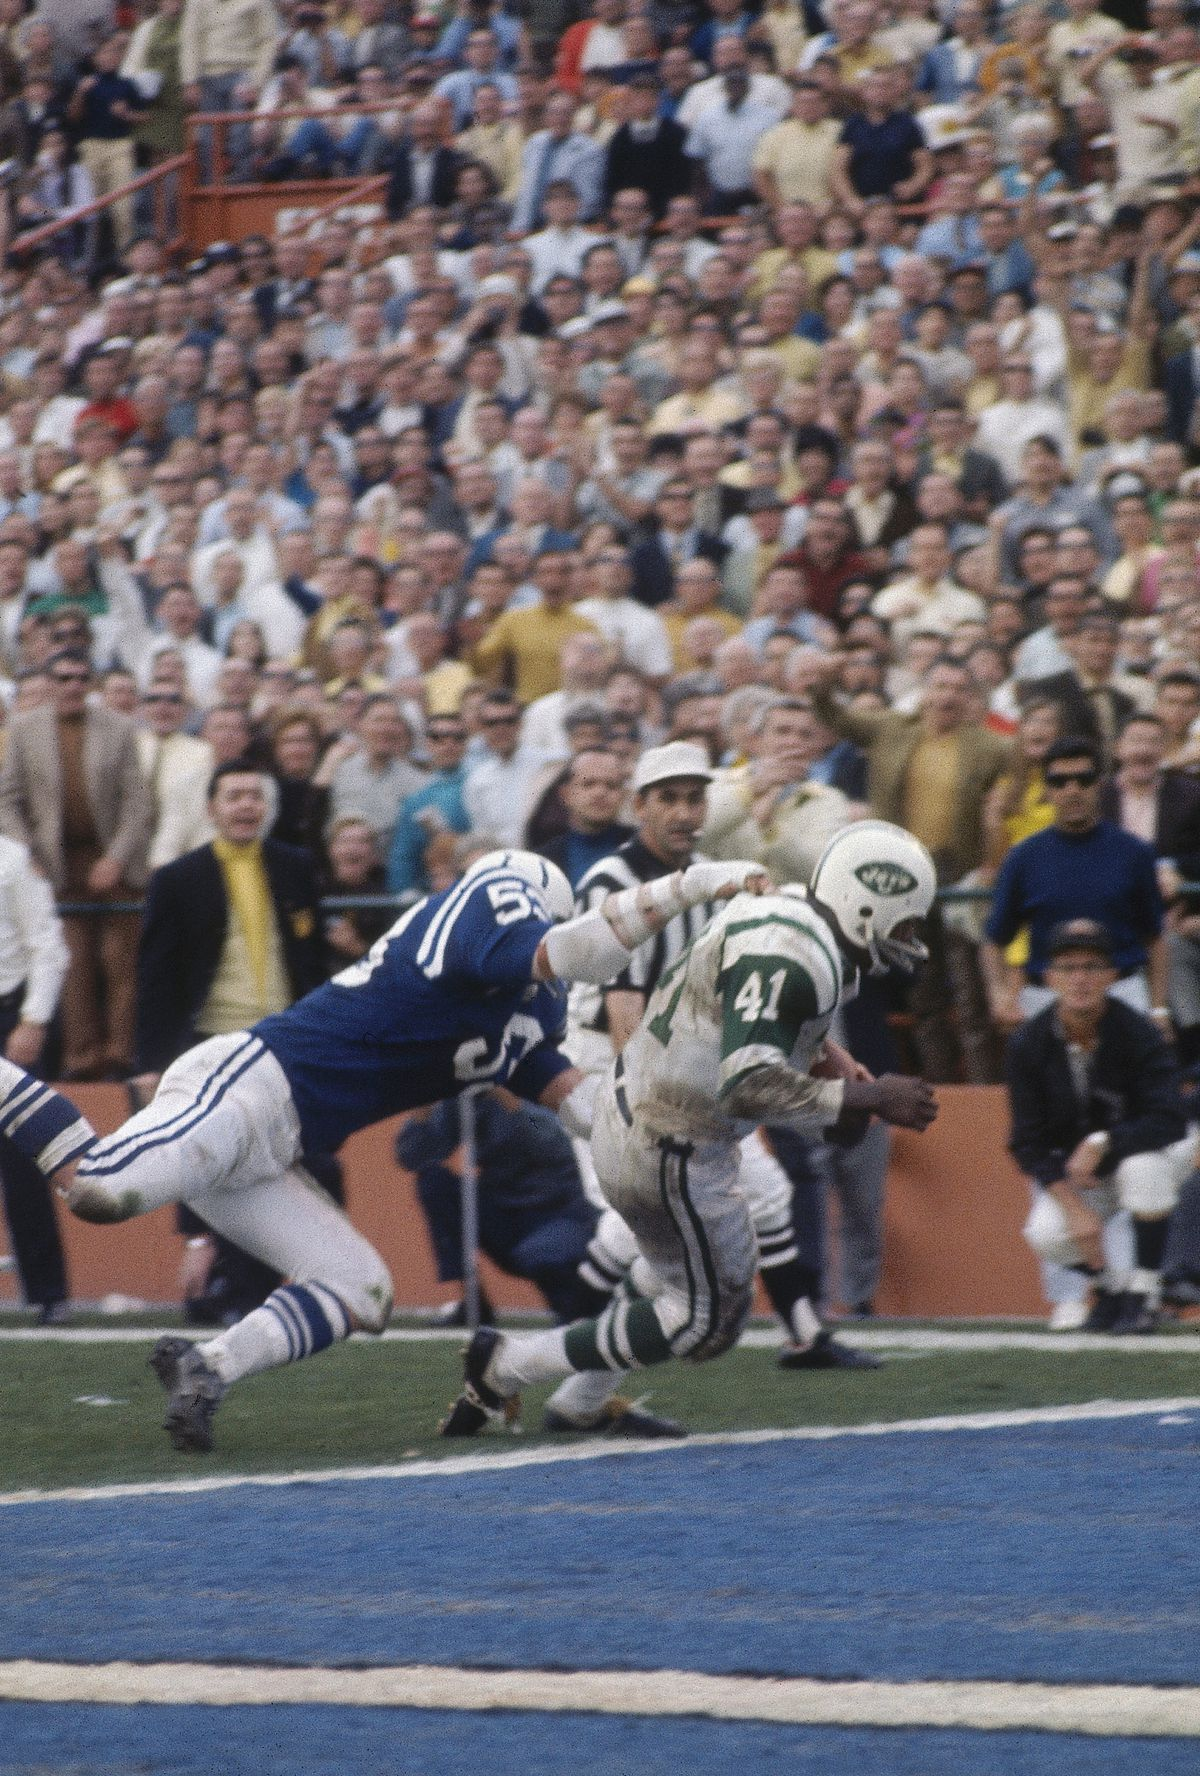 Jets v Colts